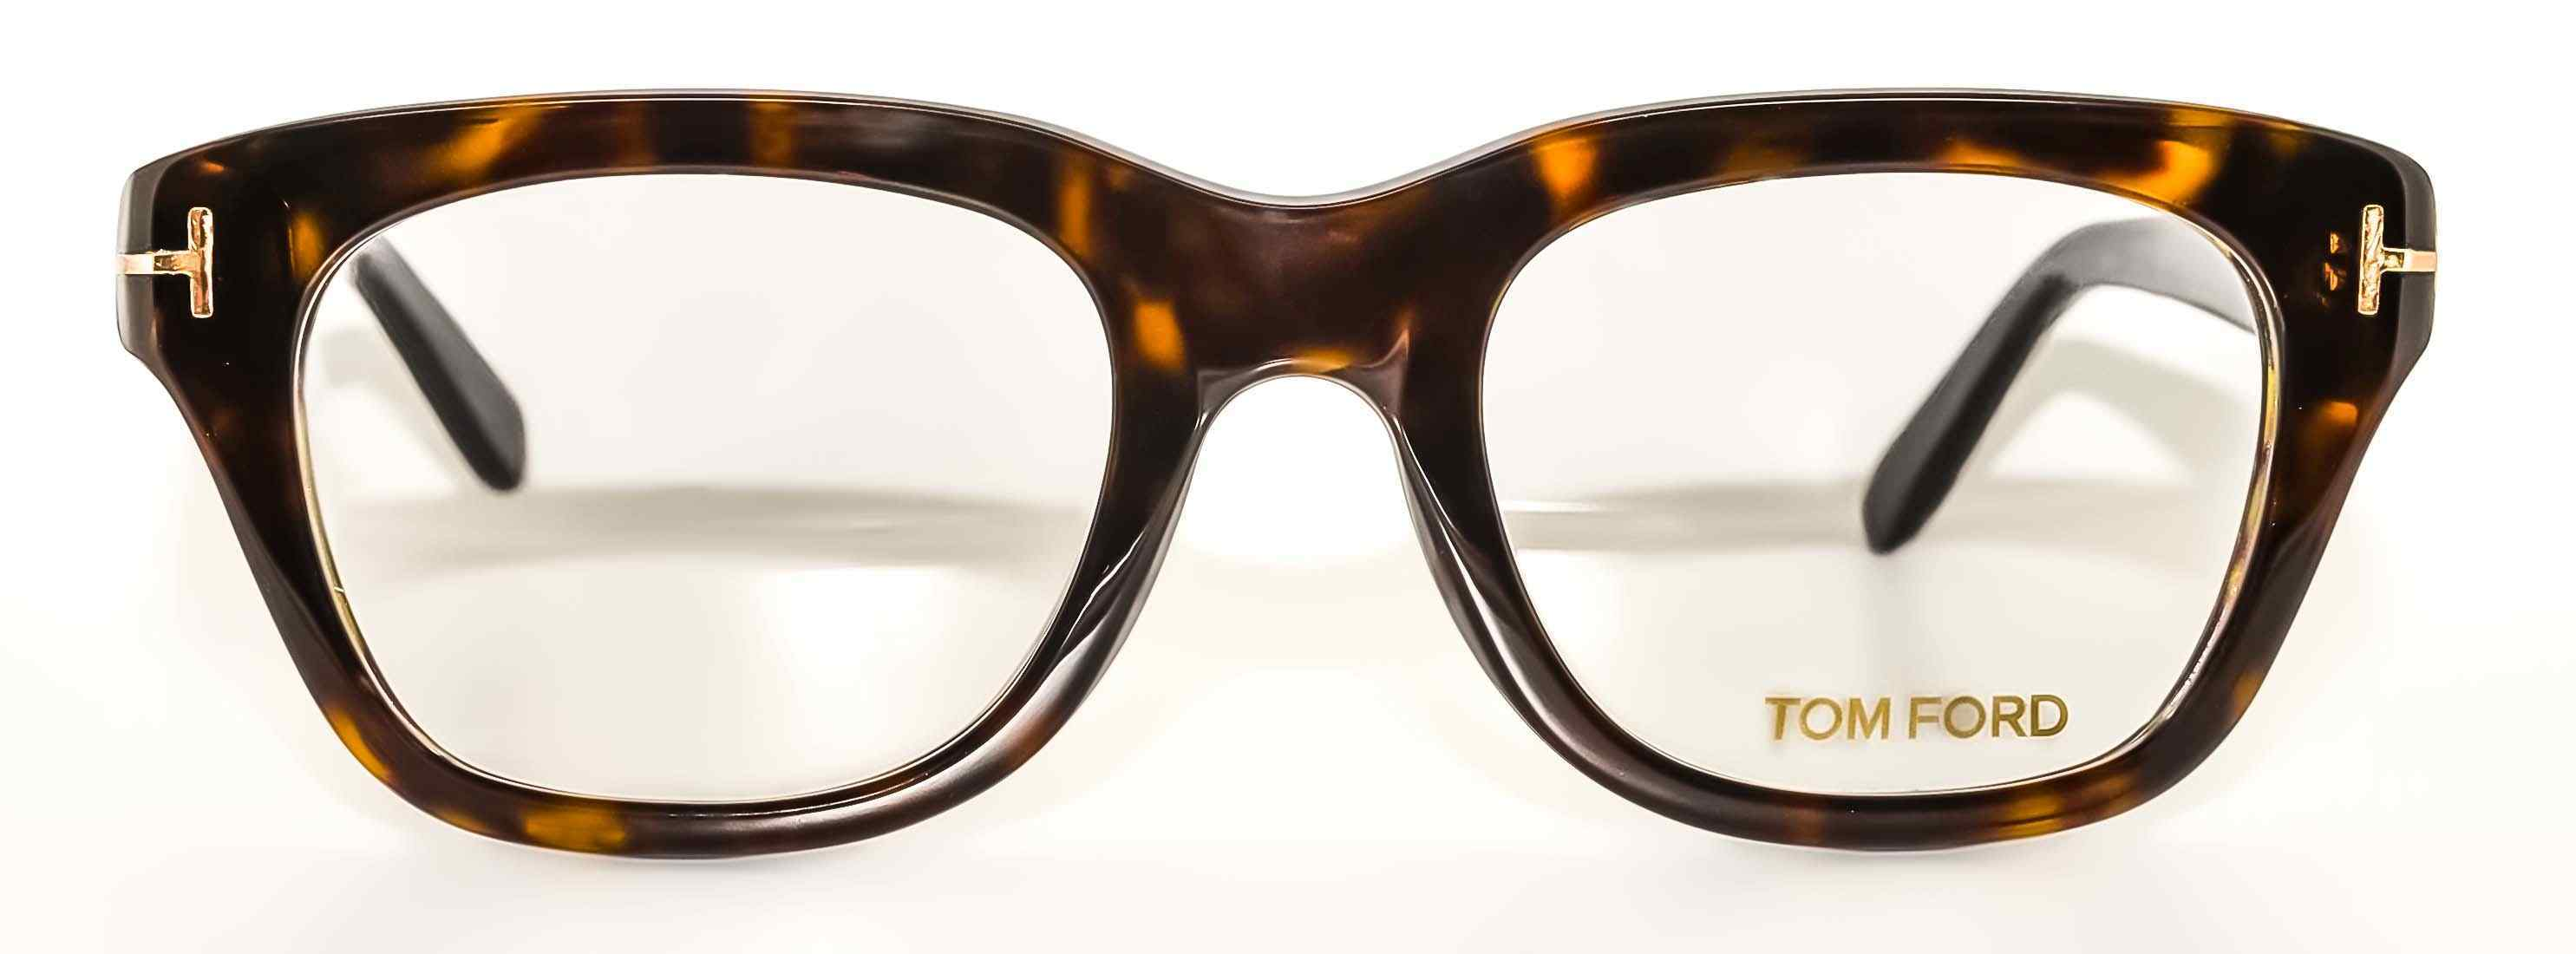 Tom Ford spectacles 5178f 52 1 2970x1100